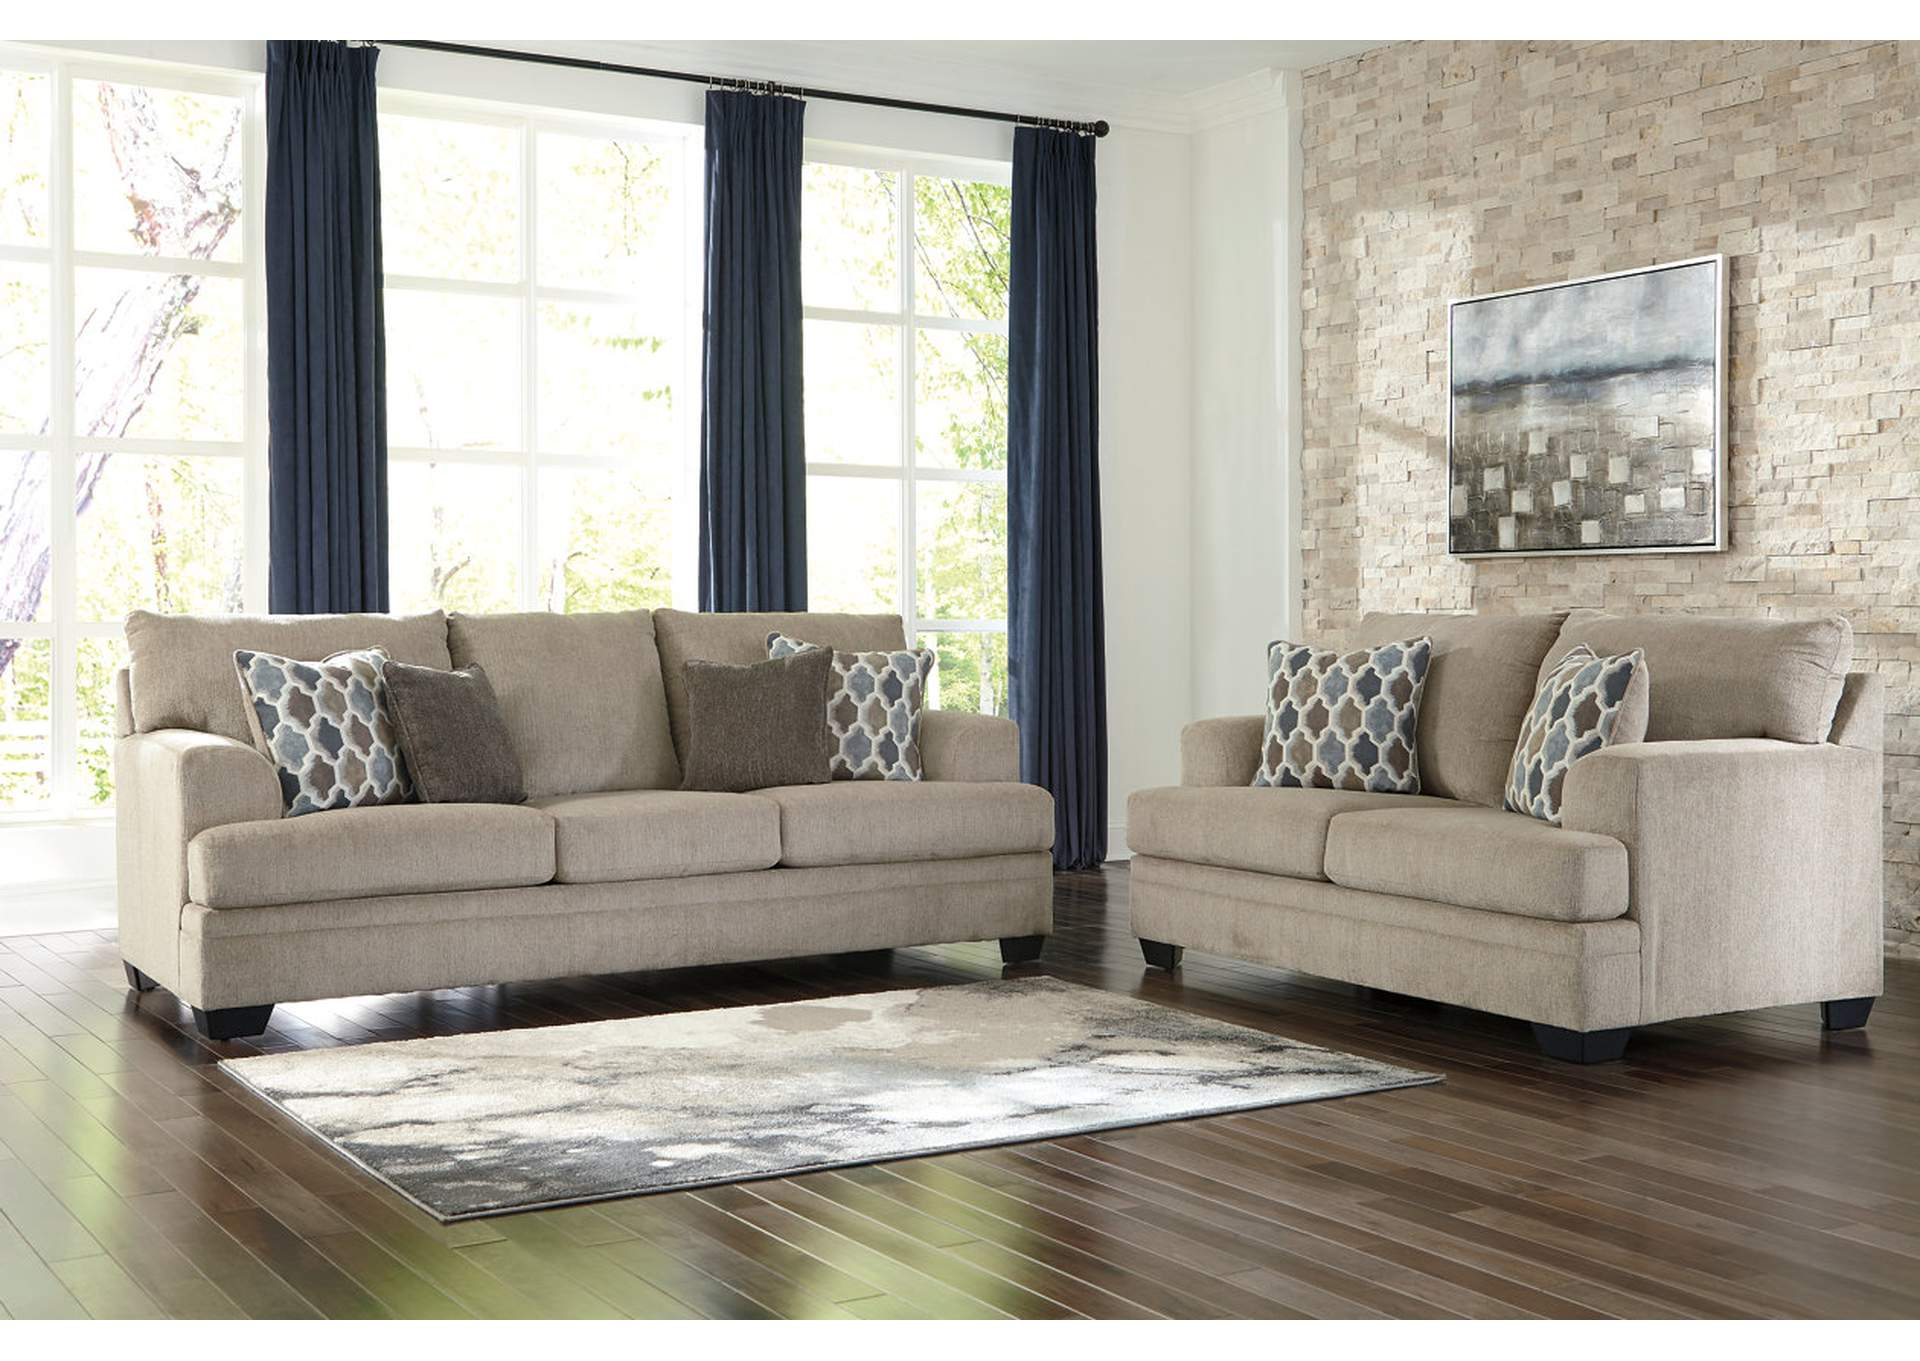 Dorsten Sisal Sofa & Loveseat,Signature Design By Ashley